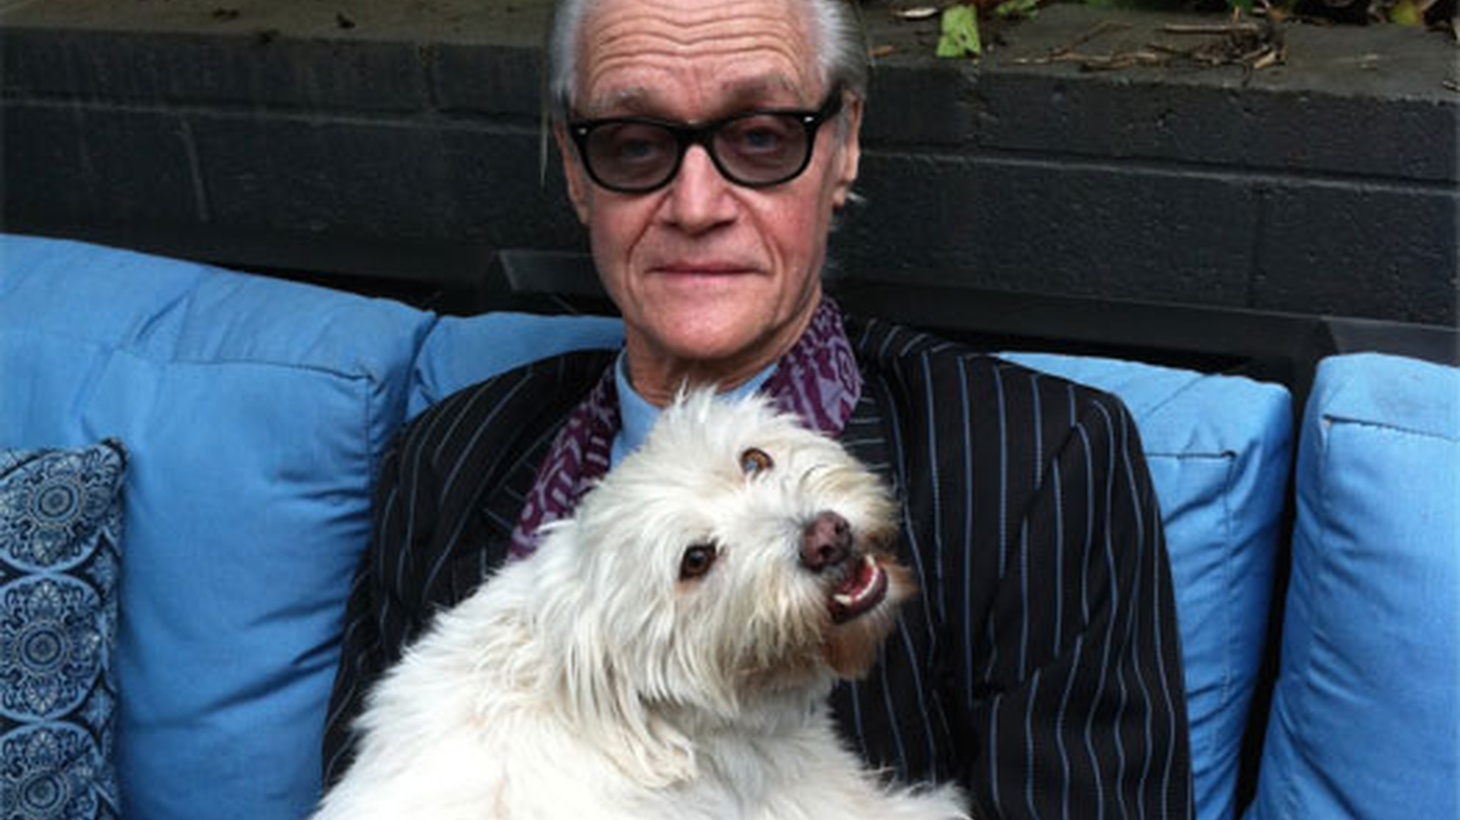 Gary Calamar's special tribute on the notorious L.A. music legend Kim Fowley who passed away on January 15, 2015. With special guests: Music Journalist Harvey Kubernik and Musician/producer Ben Vaughn. Tune in to hear about the good, the bad and the ugly of the late, great Kim Fowley.